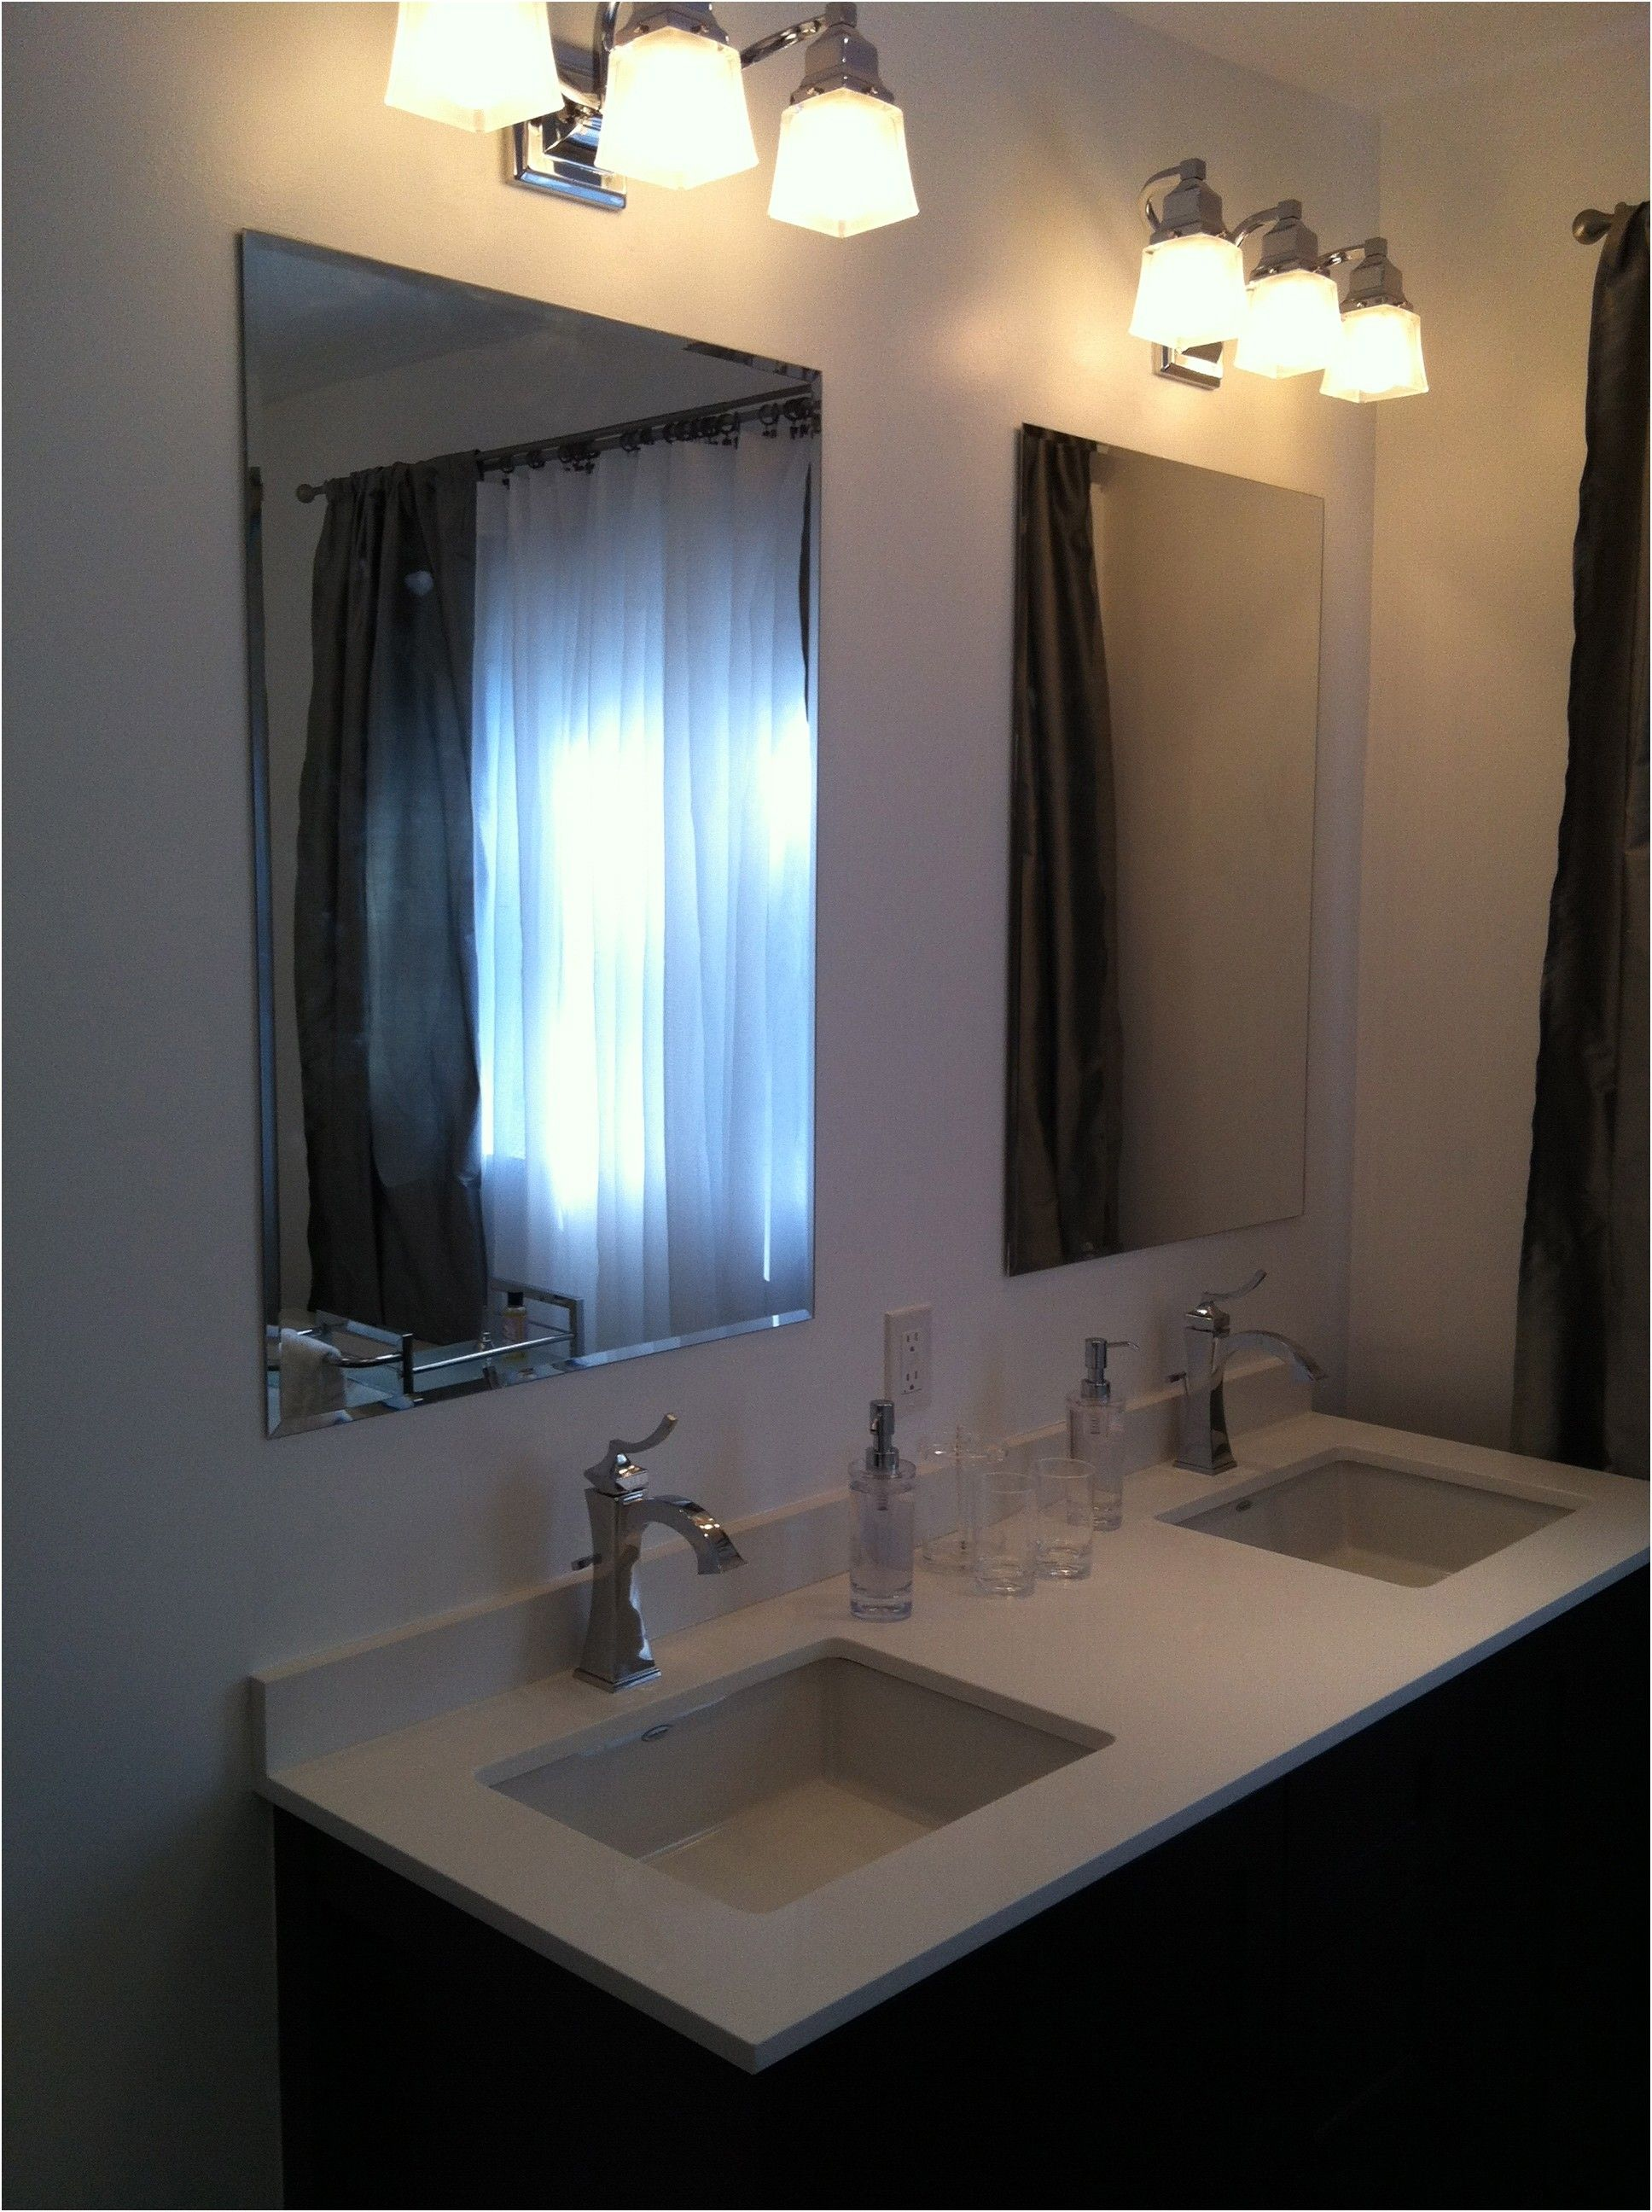 Ikea Bathroom Vanity, Bathroom Mirrors, Vanity Lights Ikea, Tri Fold  Mirror, Bathroom Mirrors Uk